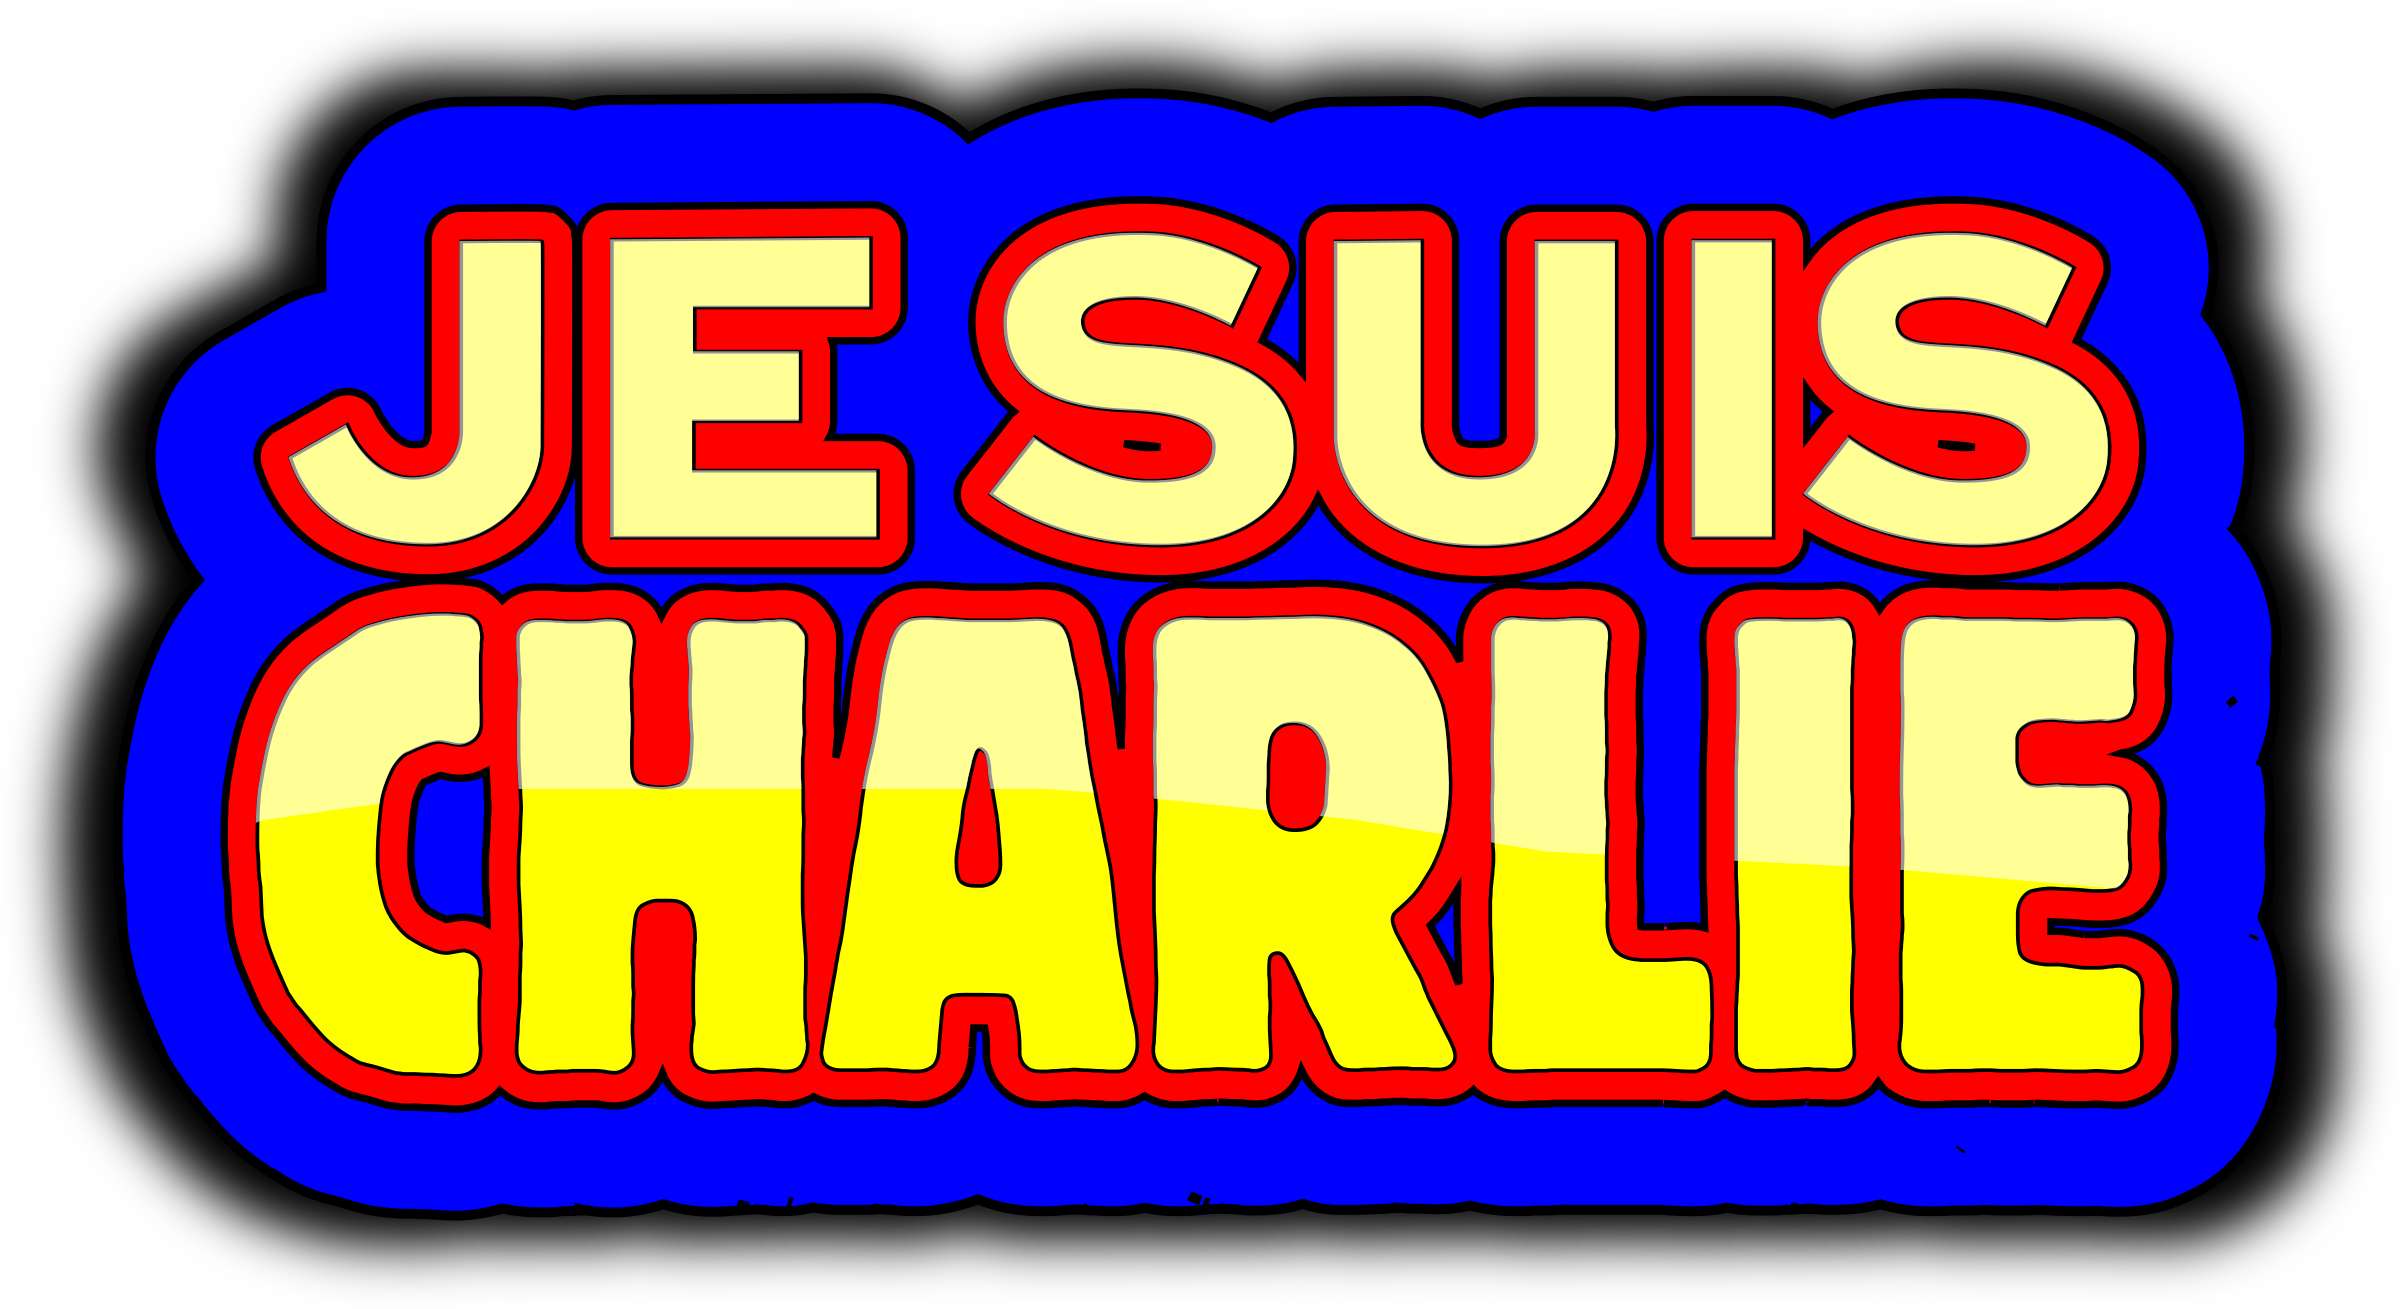 Je suis charlie offset by ezequias